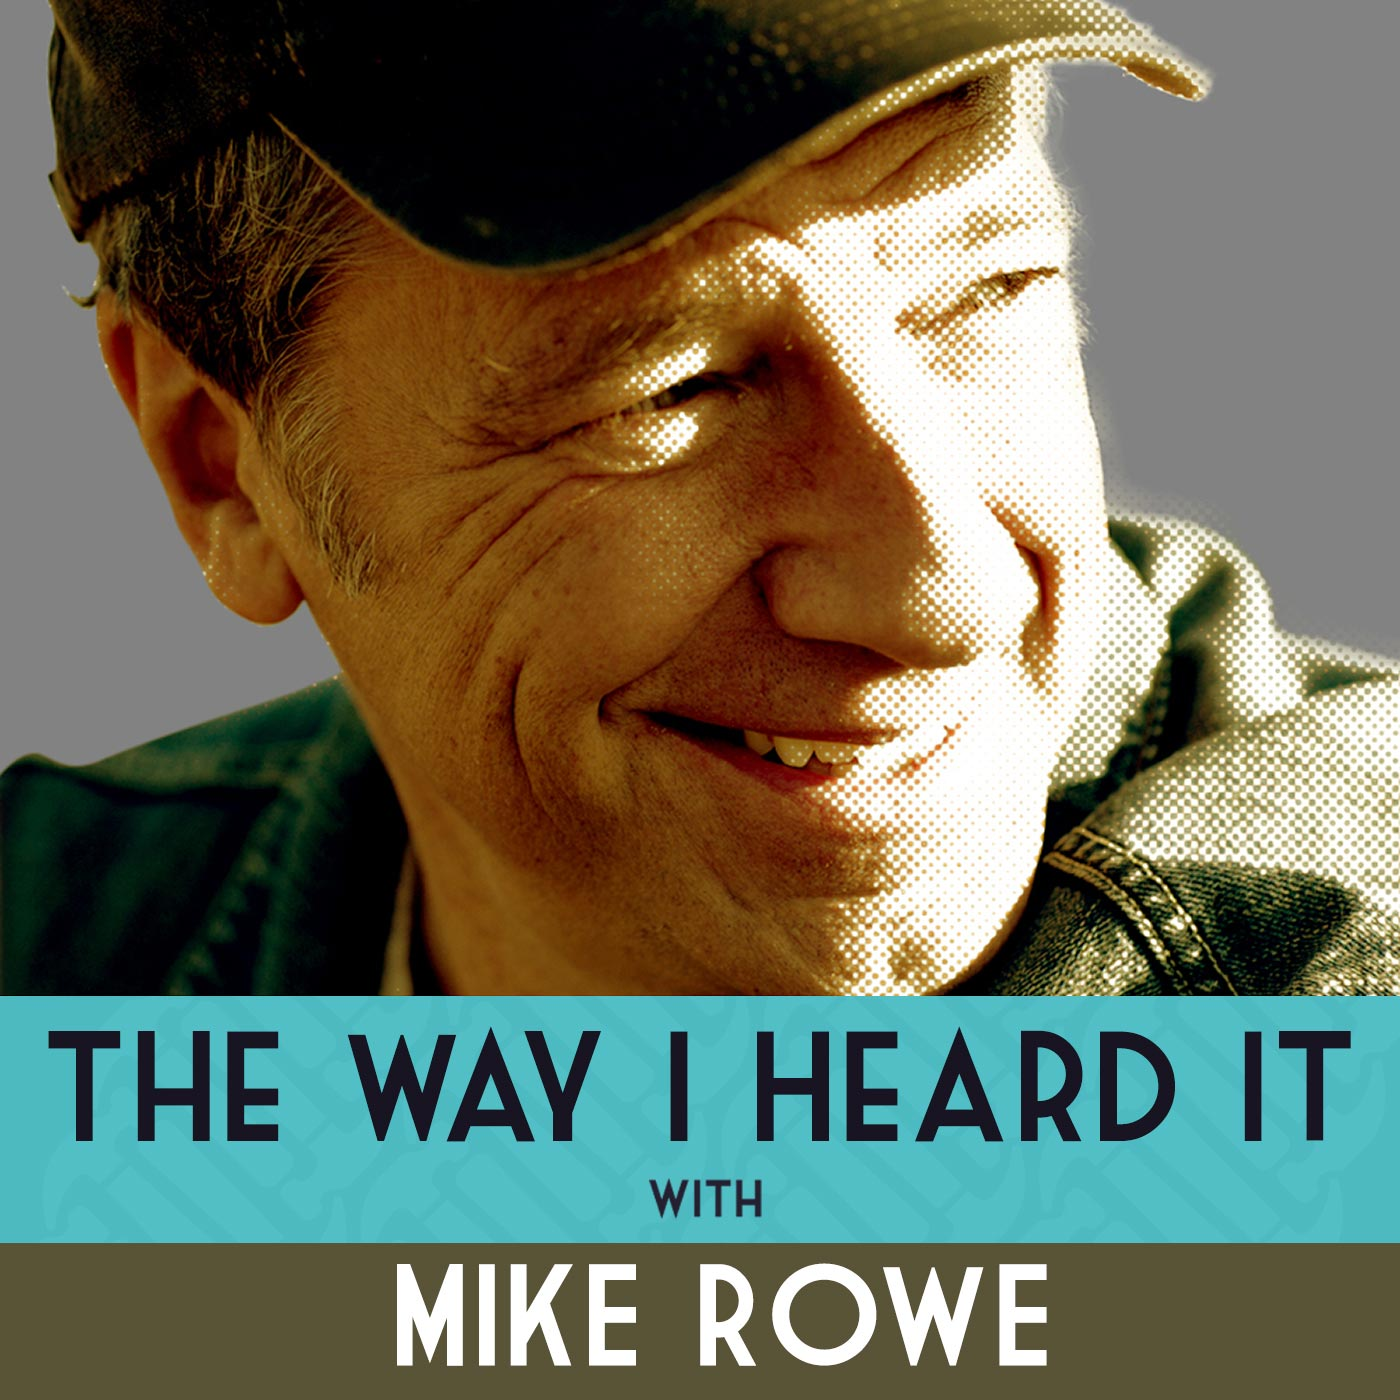 The Way I Heard It, with Mike Rowe